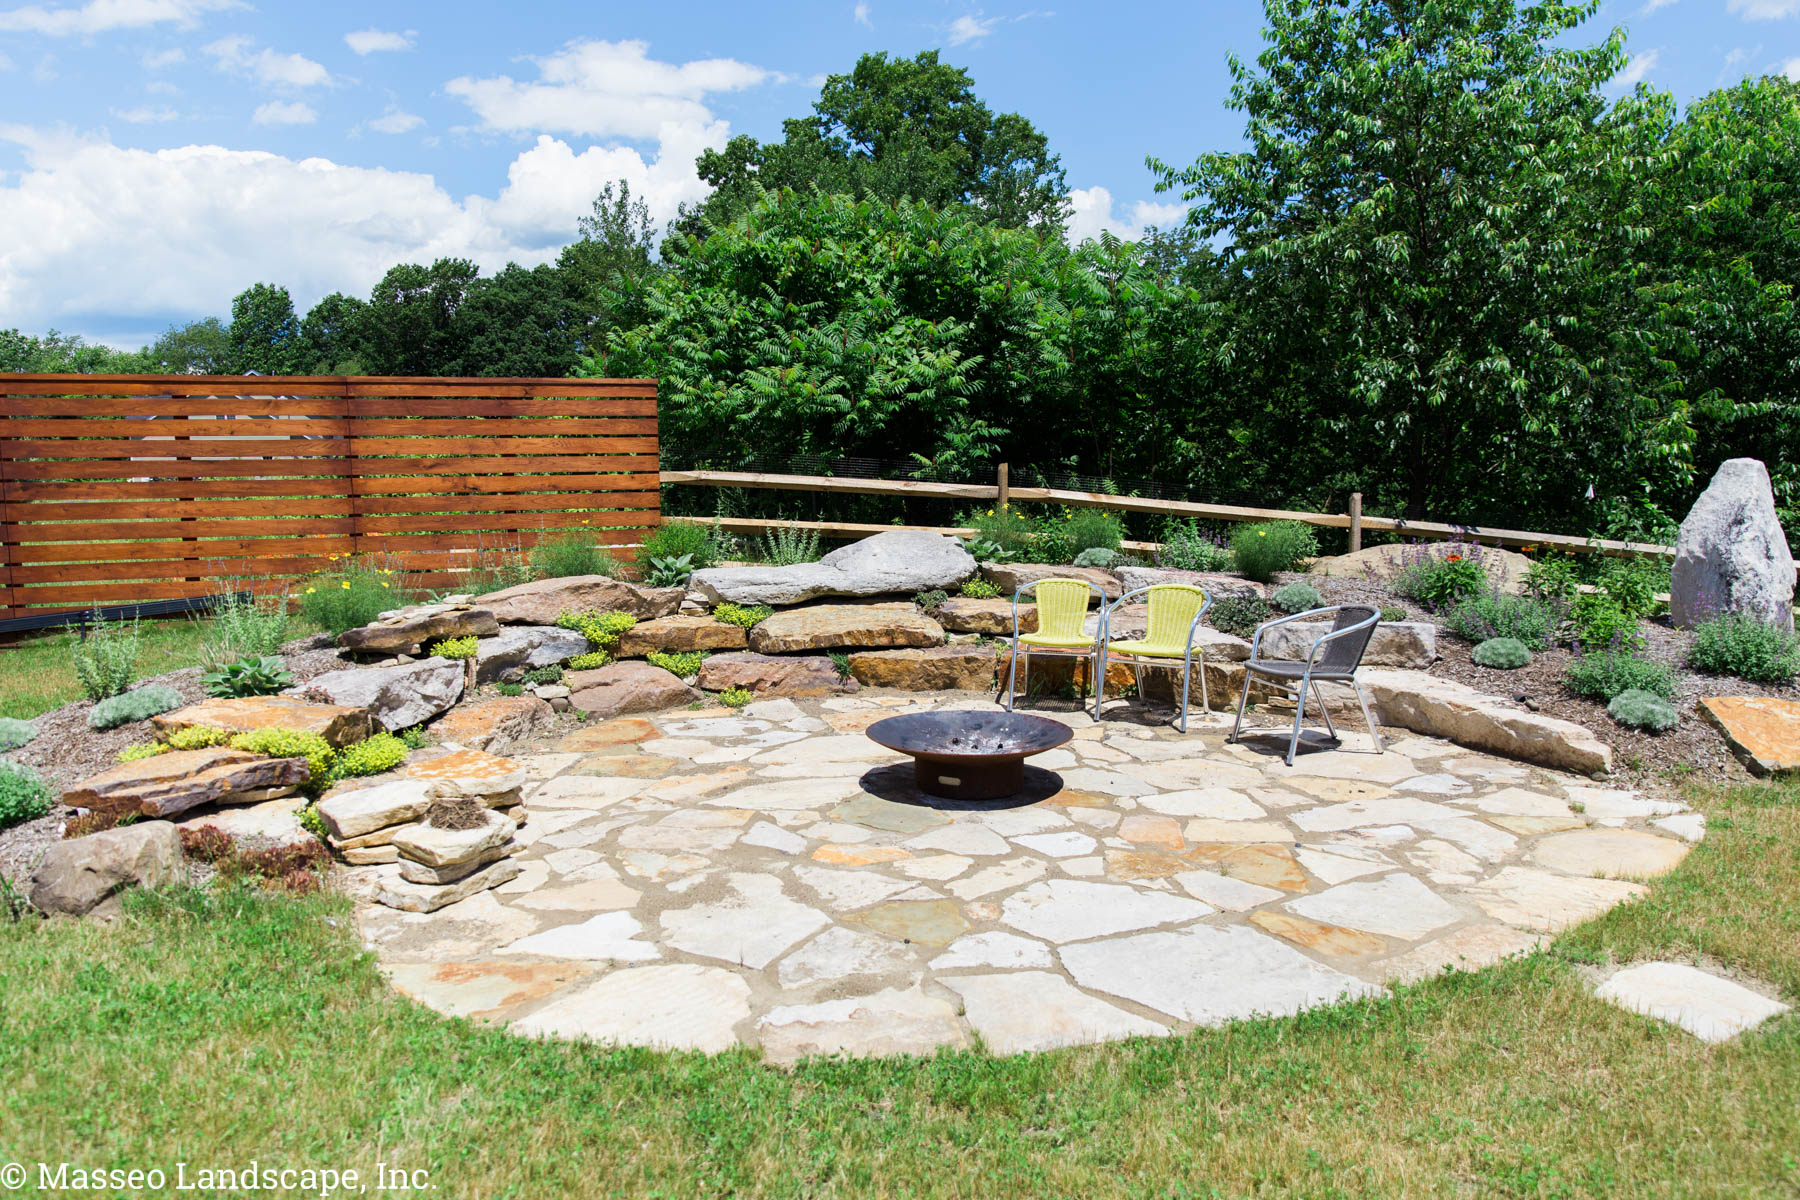 Circular natural stone patio installed by Masseo Landscape, Inc, Gardiner Landscape Contractor